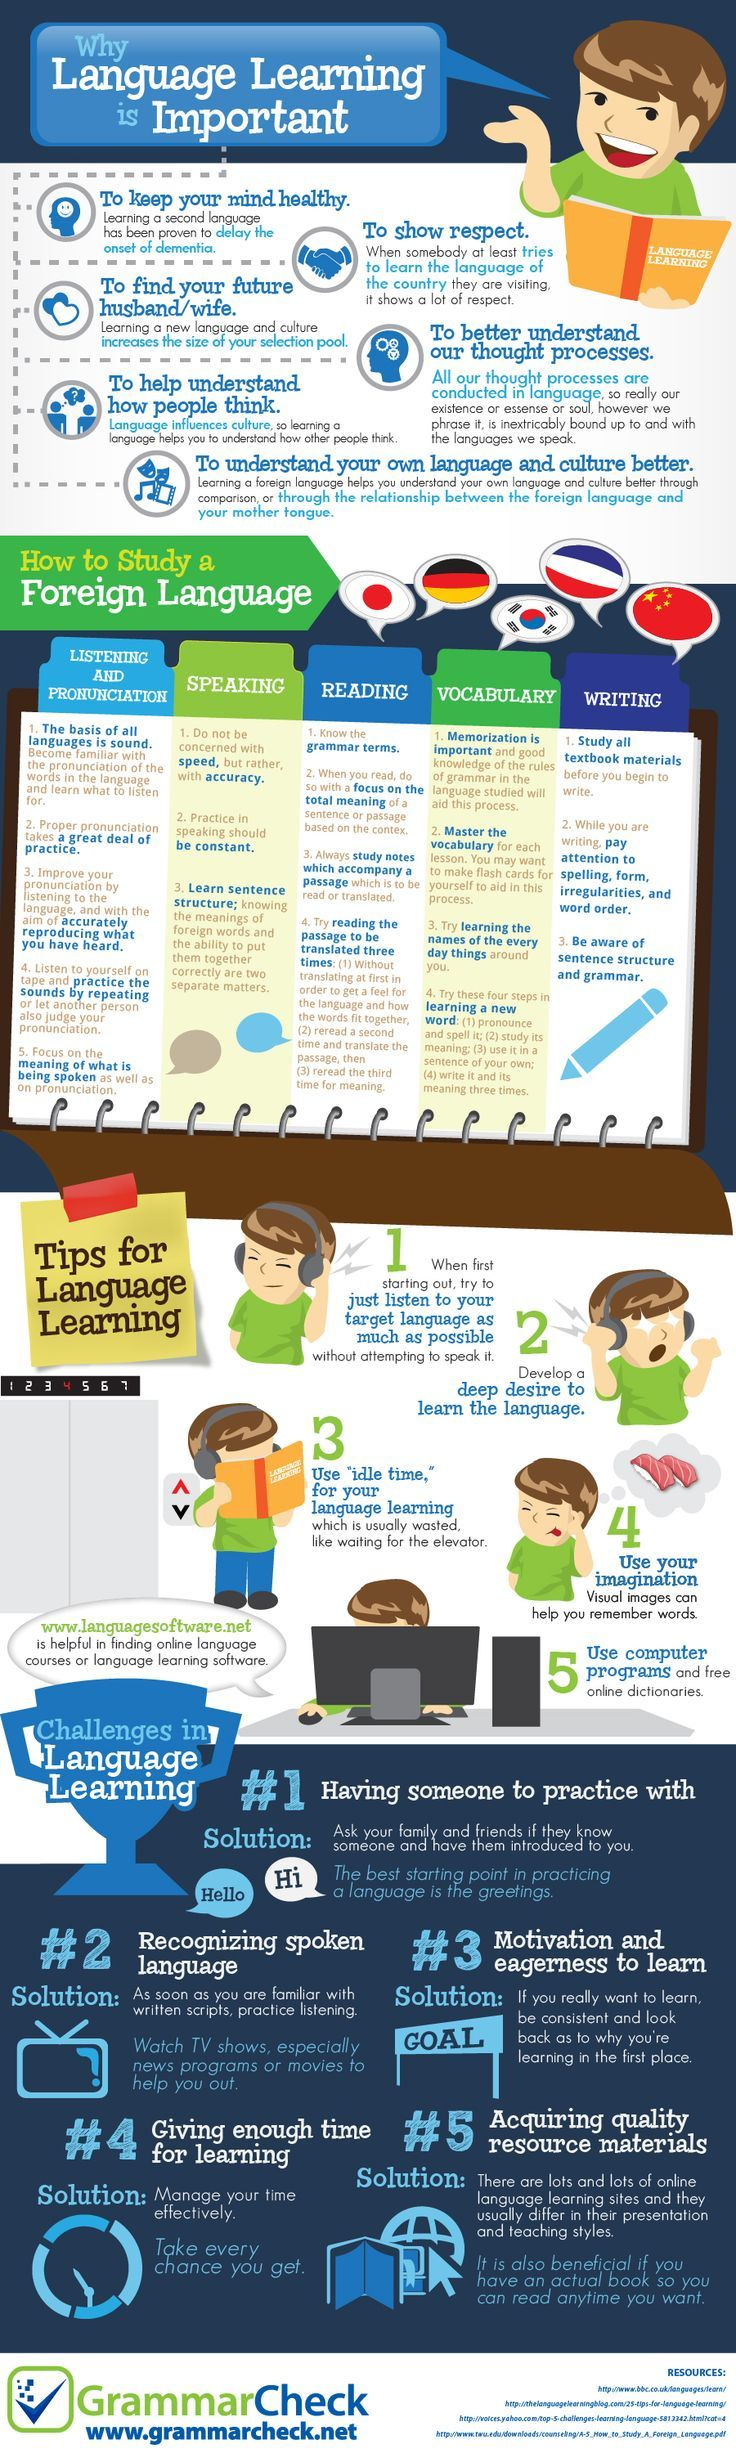 Why Language Learning is Important Infographic - http://elearninginfographics.com/why-language-learning-is-important-infographic/ #learn #spanish #kids